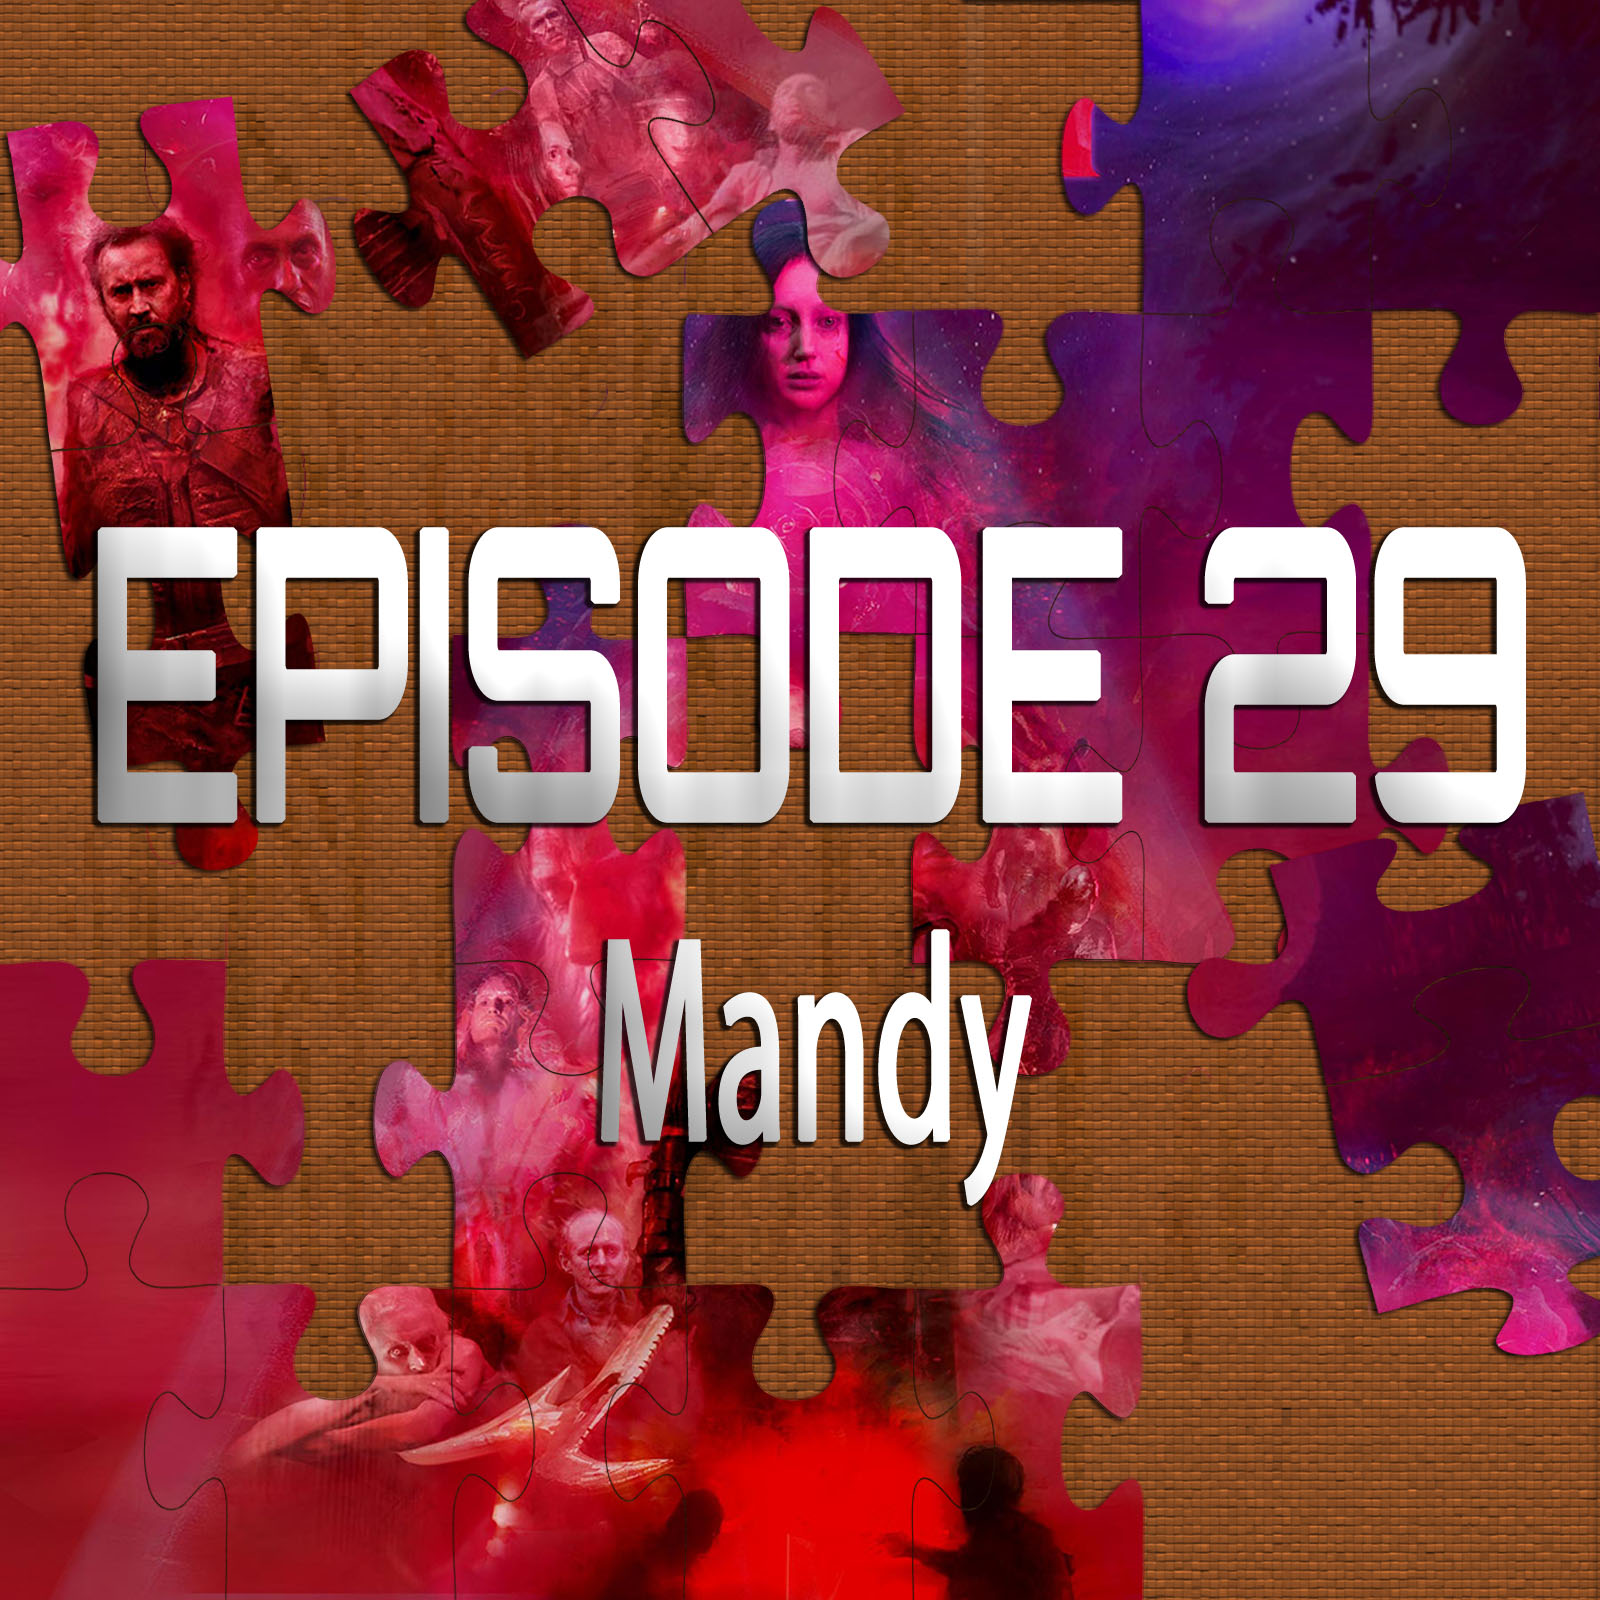 Mandy (Featuring David Quinones)